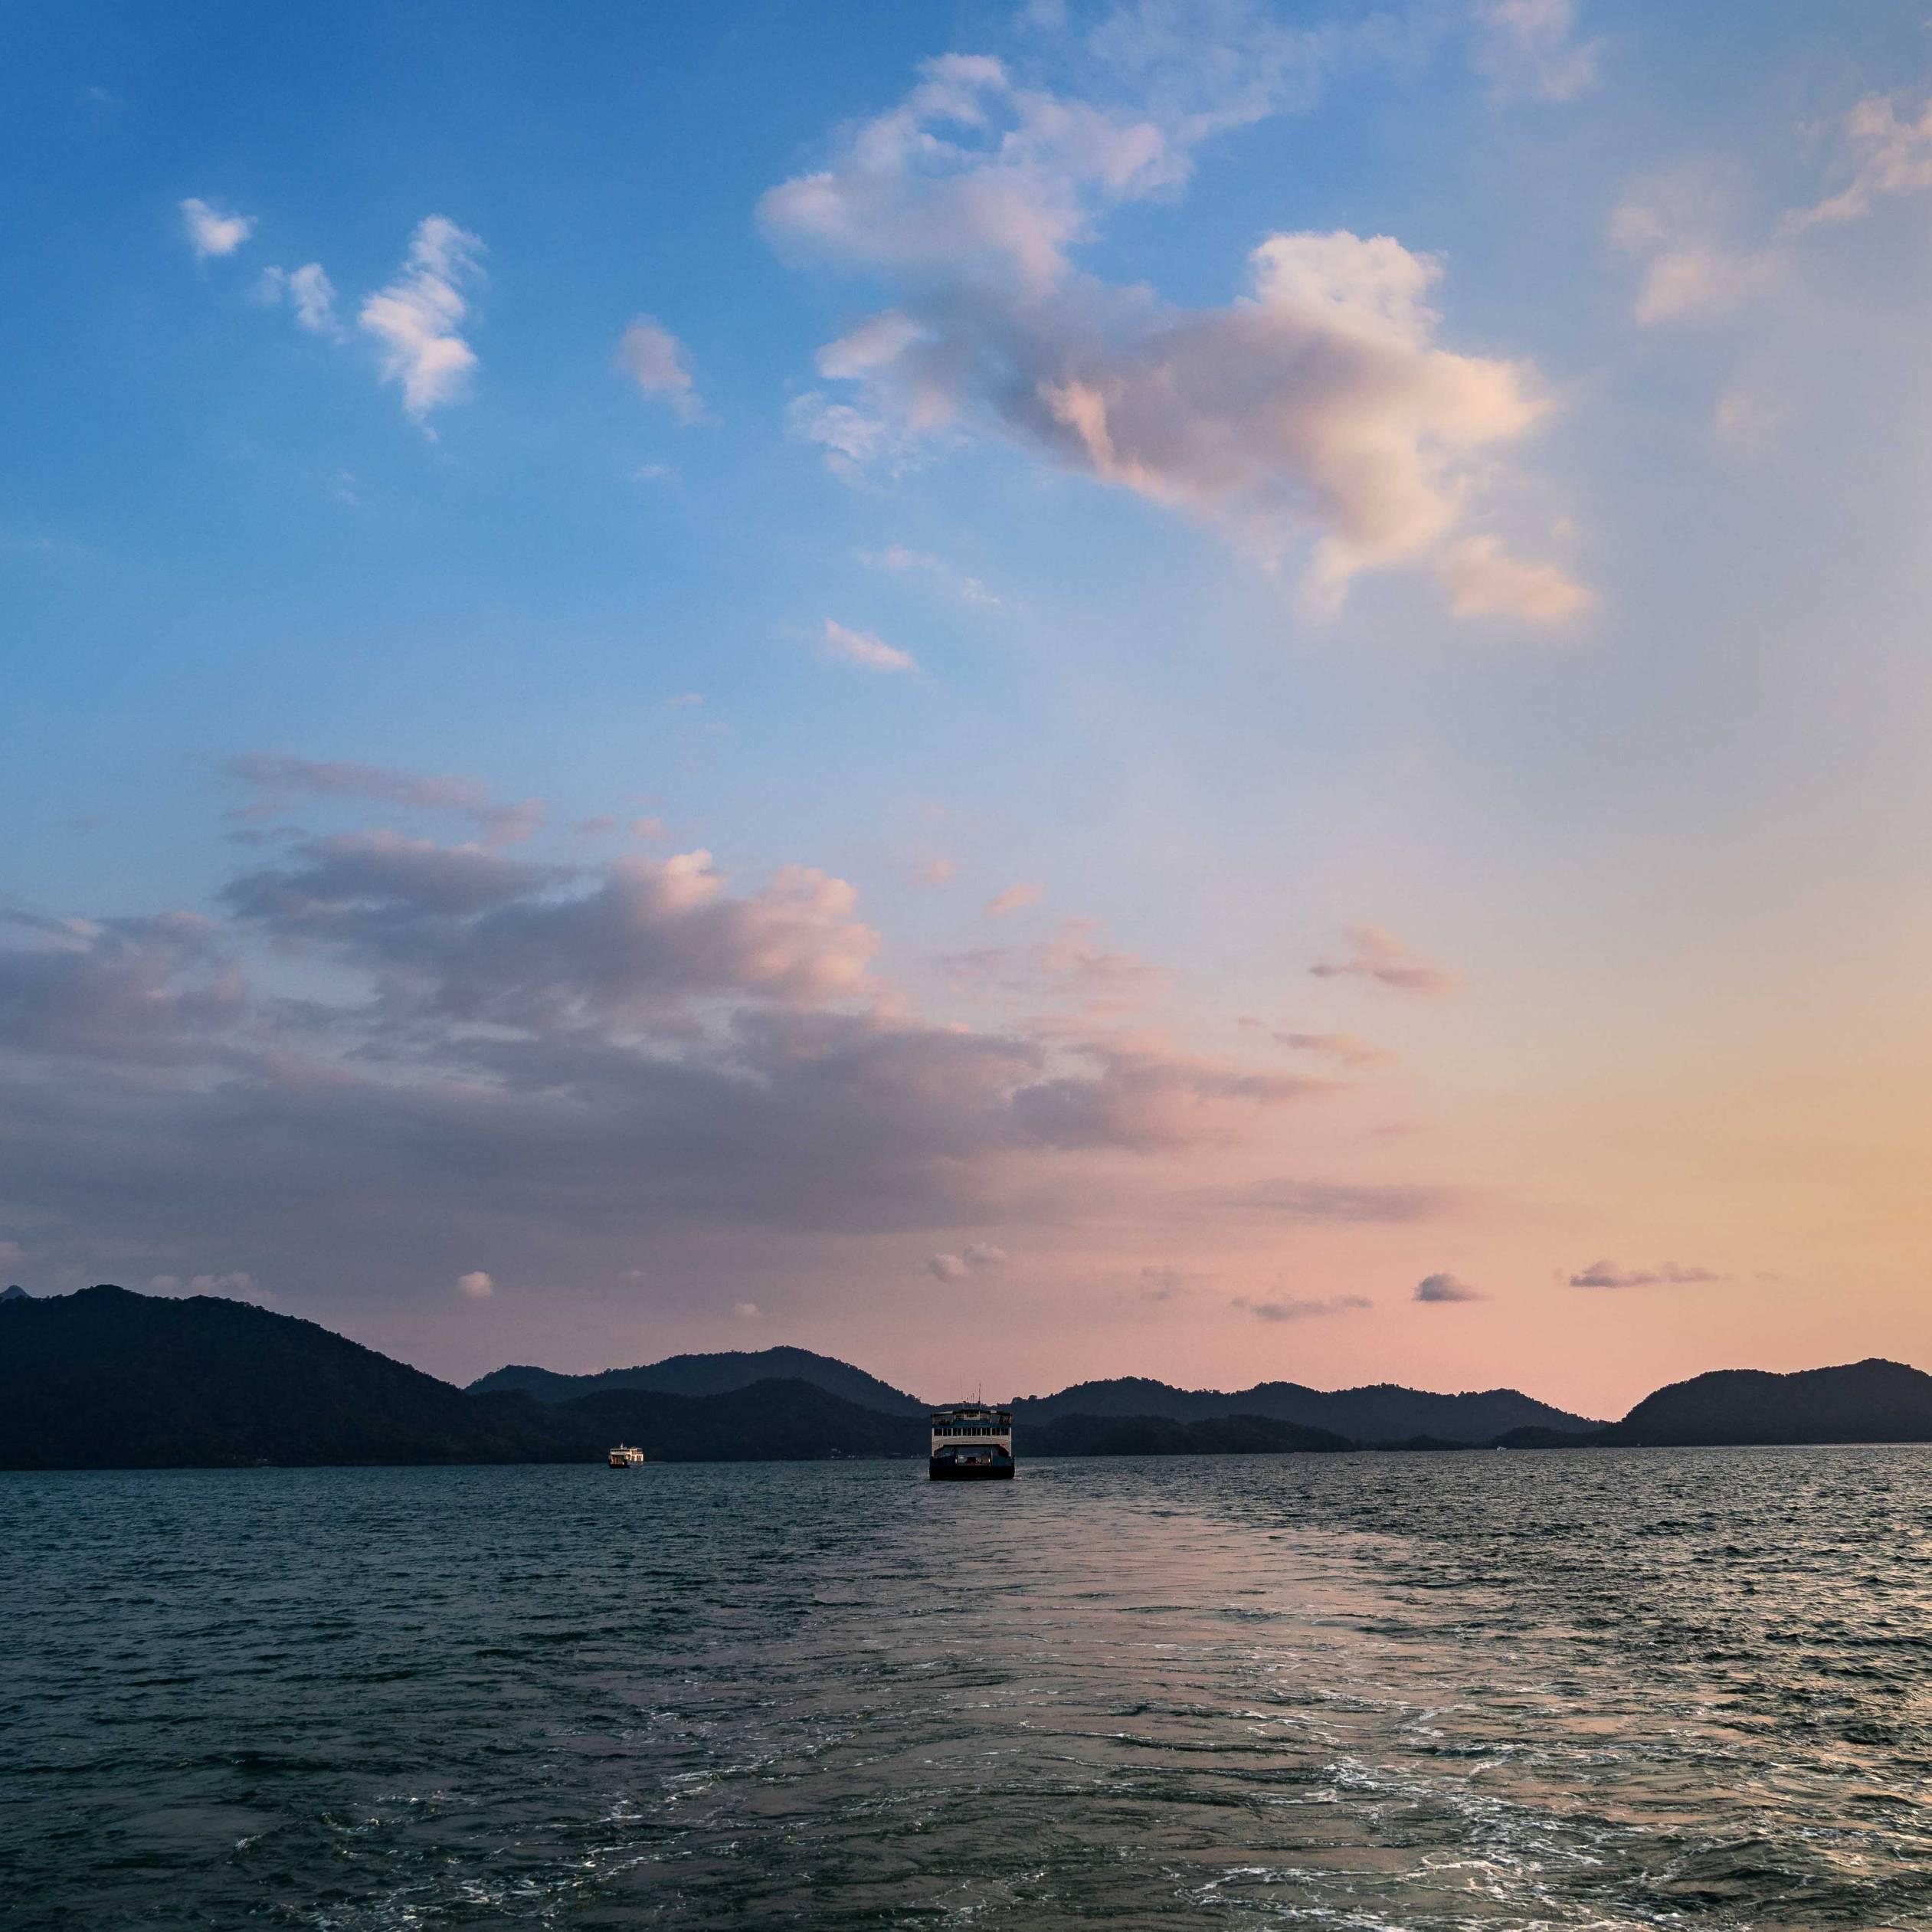 FERRY TO KOH CHANG ISLAND